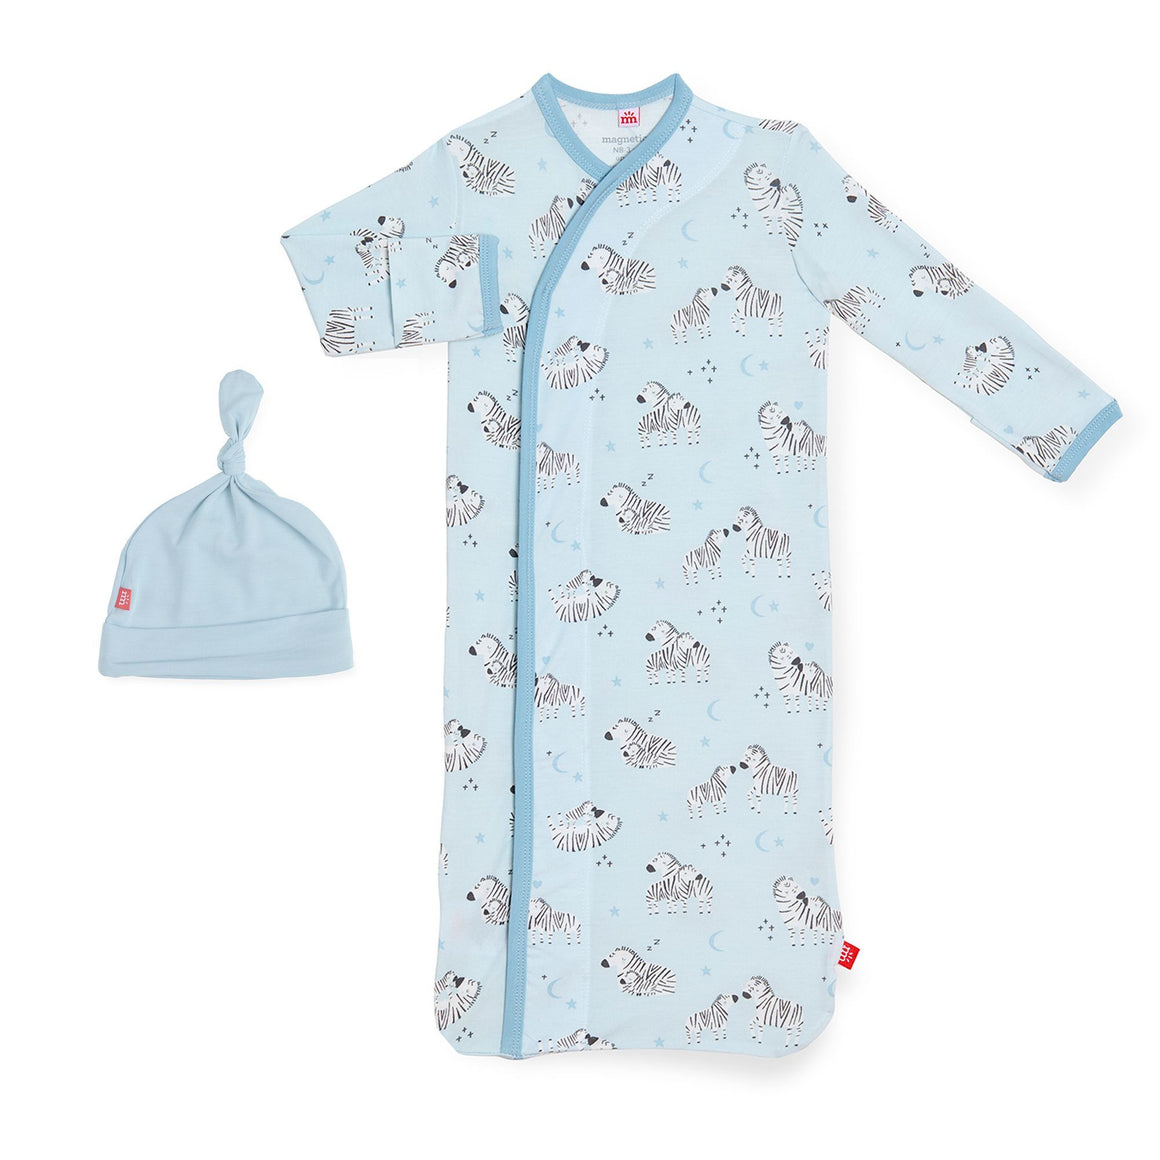 Magnificent Baby Apparel 0-3 Mo / Little One Blue Magnetic Me Little One Gown Set Blue